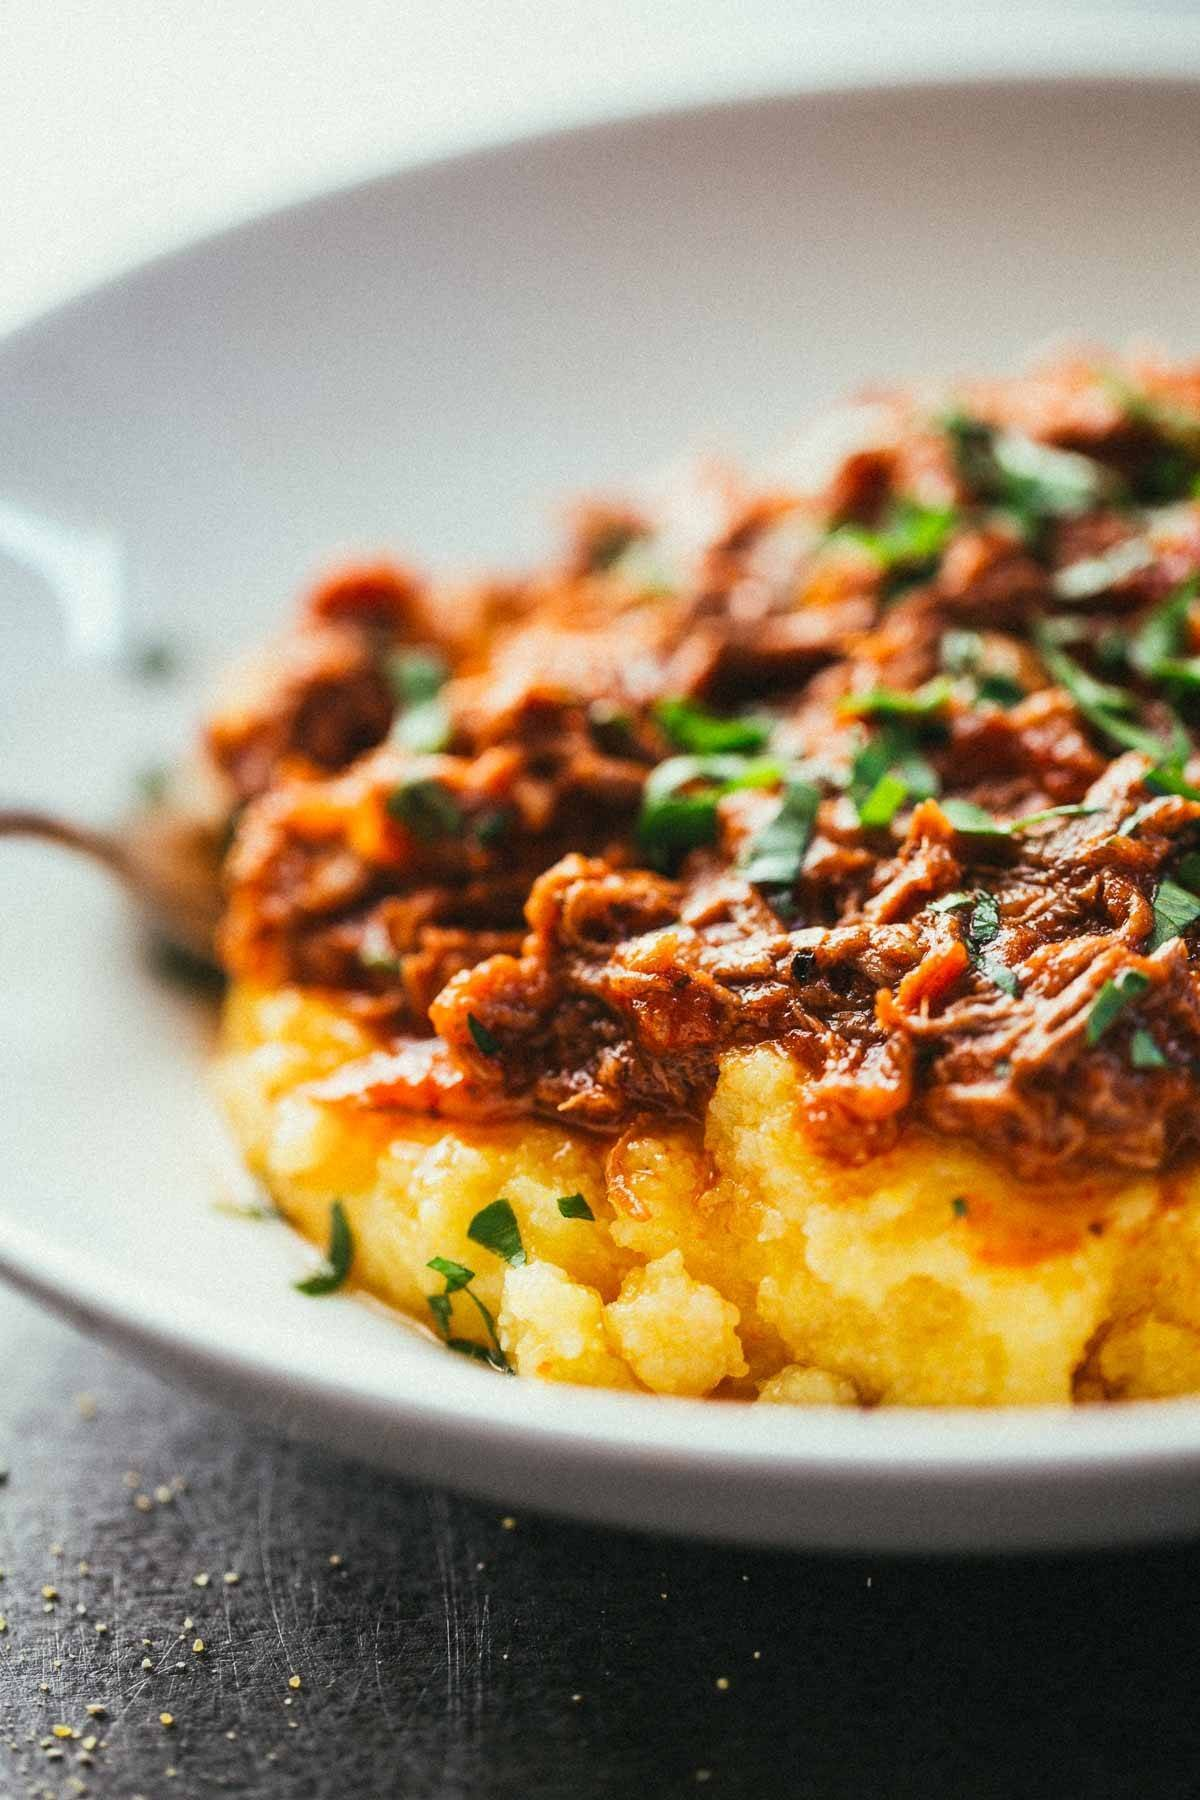 Crockpot Braised Beef Ragu with Polenta on a white plate.